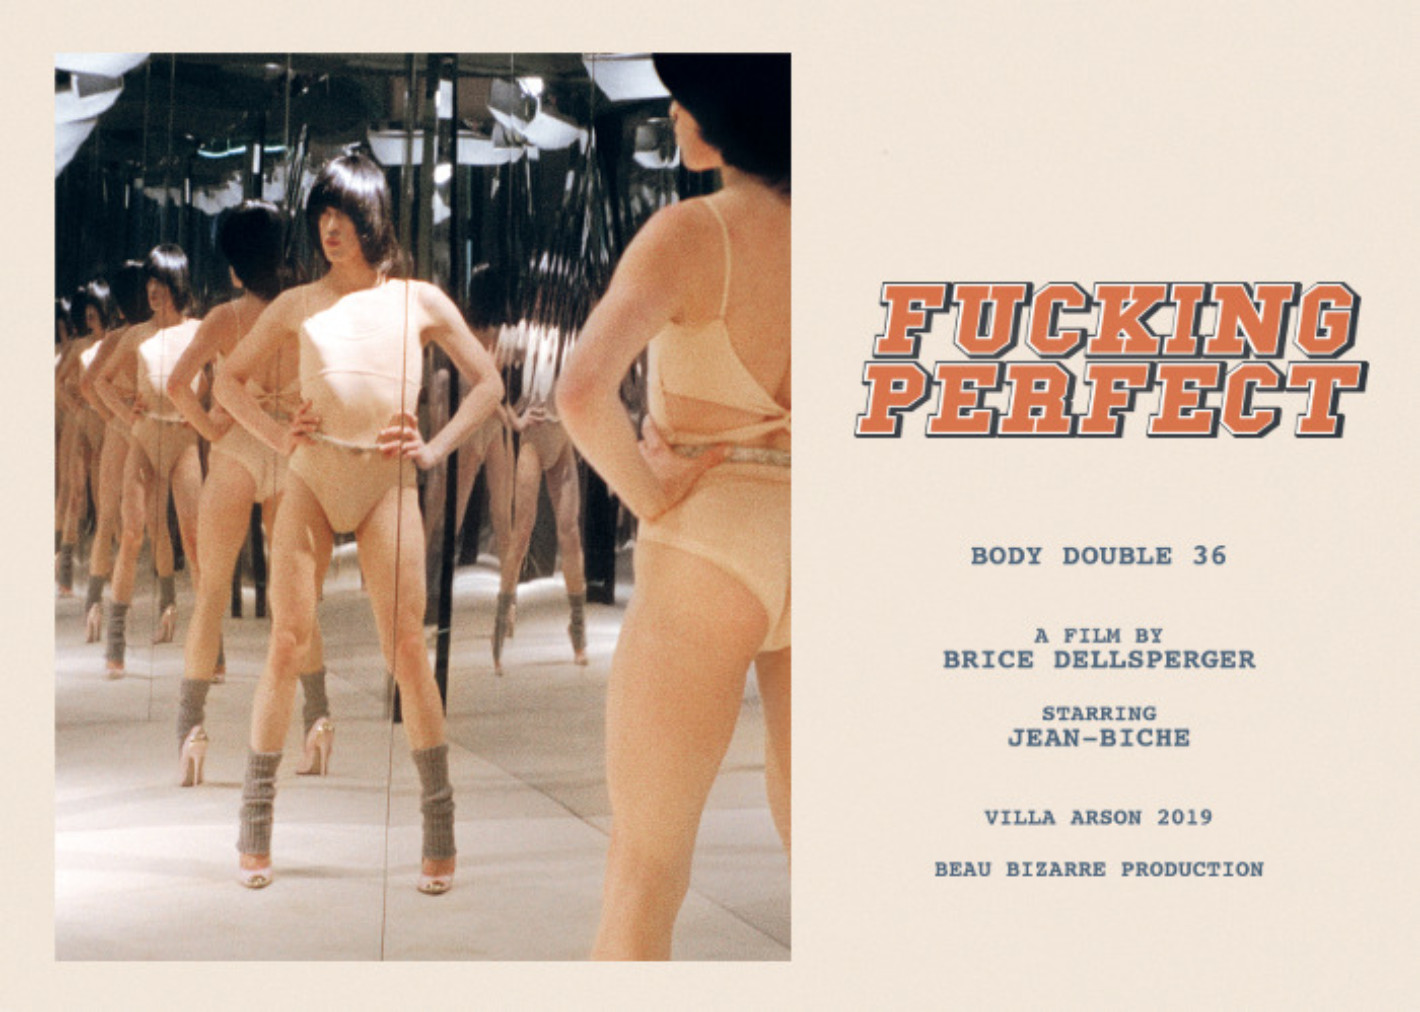 FUCKING PERFECT BODY DOUBLE 36 | Brice Dellsperger